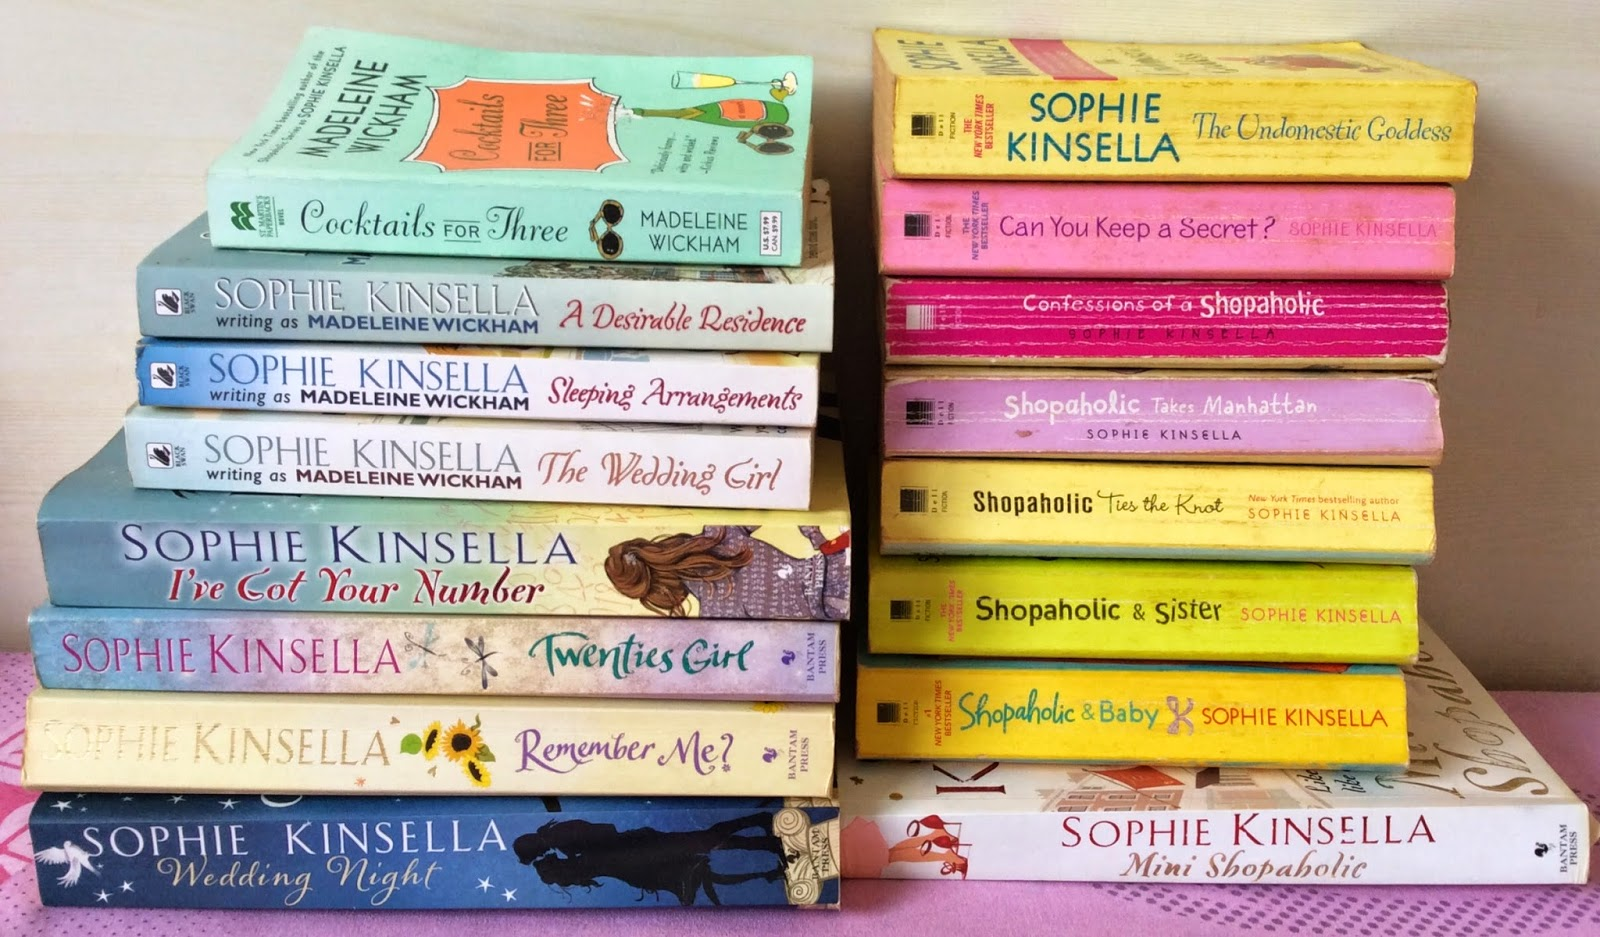 Chick Lit - Sophie Kinsella Books